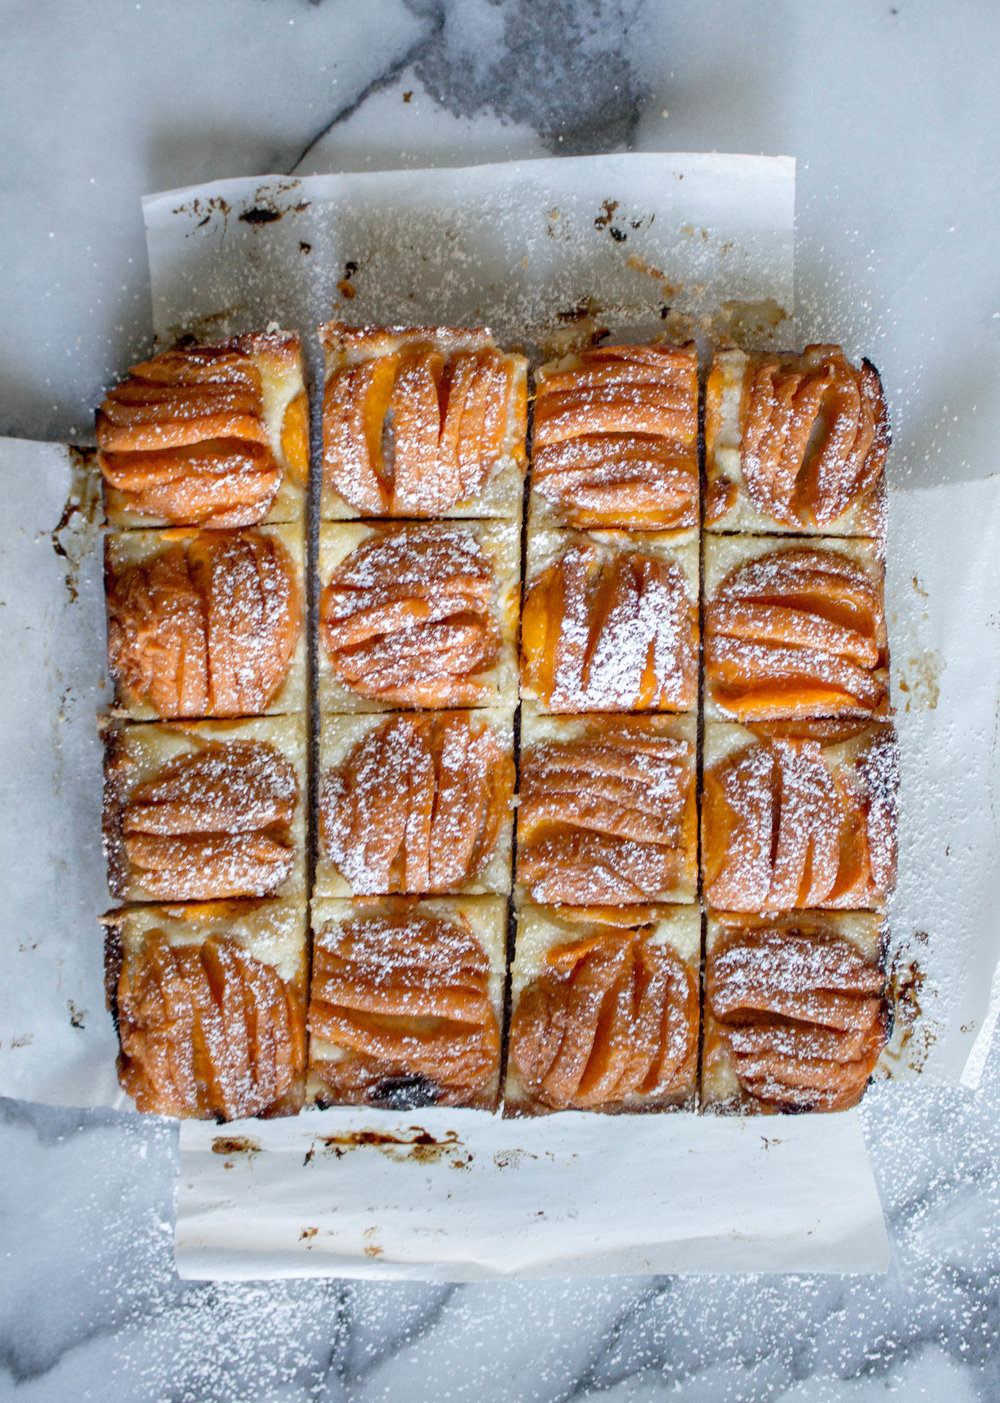 apricot almond bars - makes one 8x8-inch panadapted from smitten kitchenYield: 16 or 25 bars, depending on how you cut themCrust1 cup all-purpose flour1/4 teaspoon table salt1/4 cup granulated sugar1/2 cup unsalted butter, coldalmond Filling110g almond flour (a little more than 1 cup)1 tablespoon all-purpose flourFew pinches of sea salt6 tablespoons sugar5 tablespoons unsalted butter, softened1 large egg1/4 teaspoon almond extract (optional)1 pound firm-ripe apricots